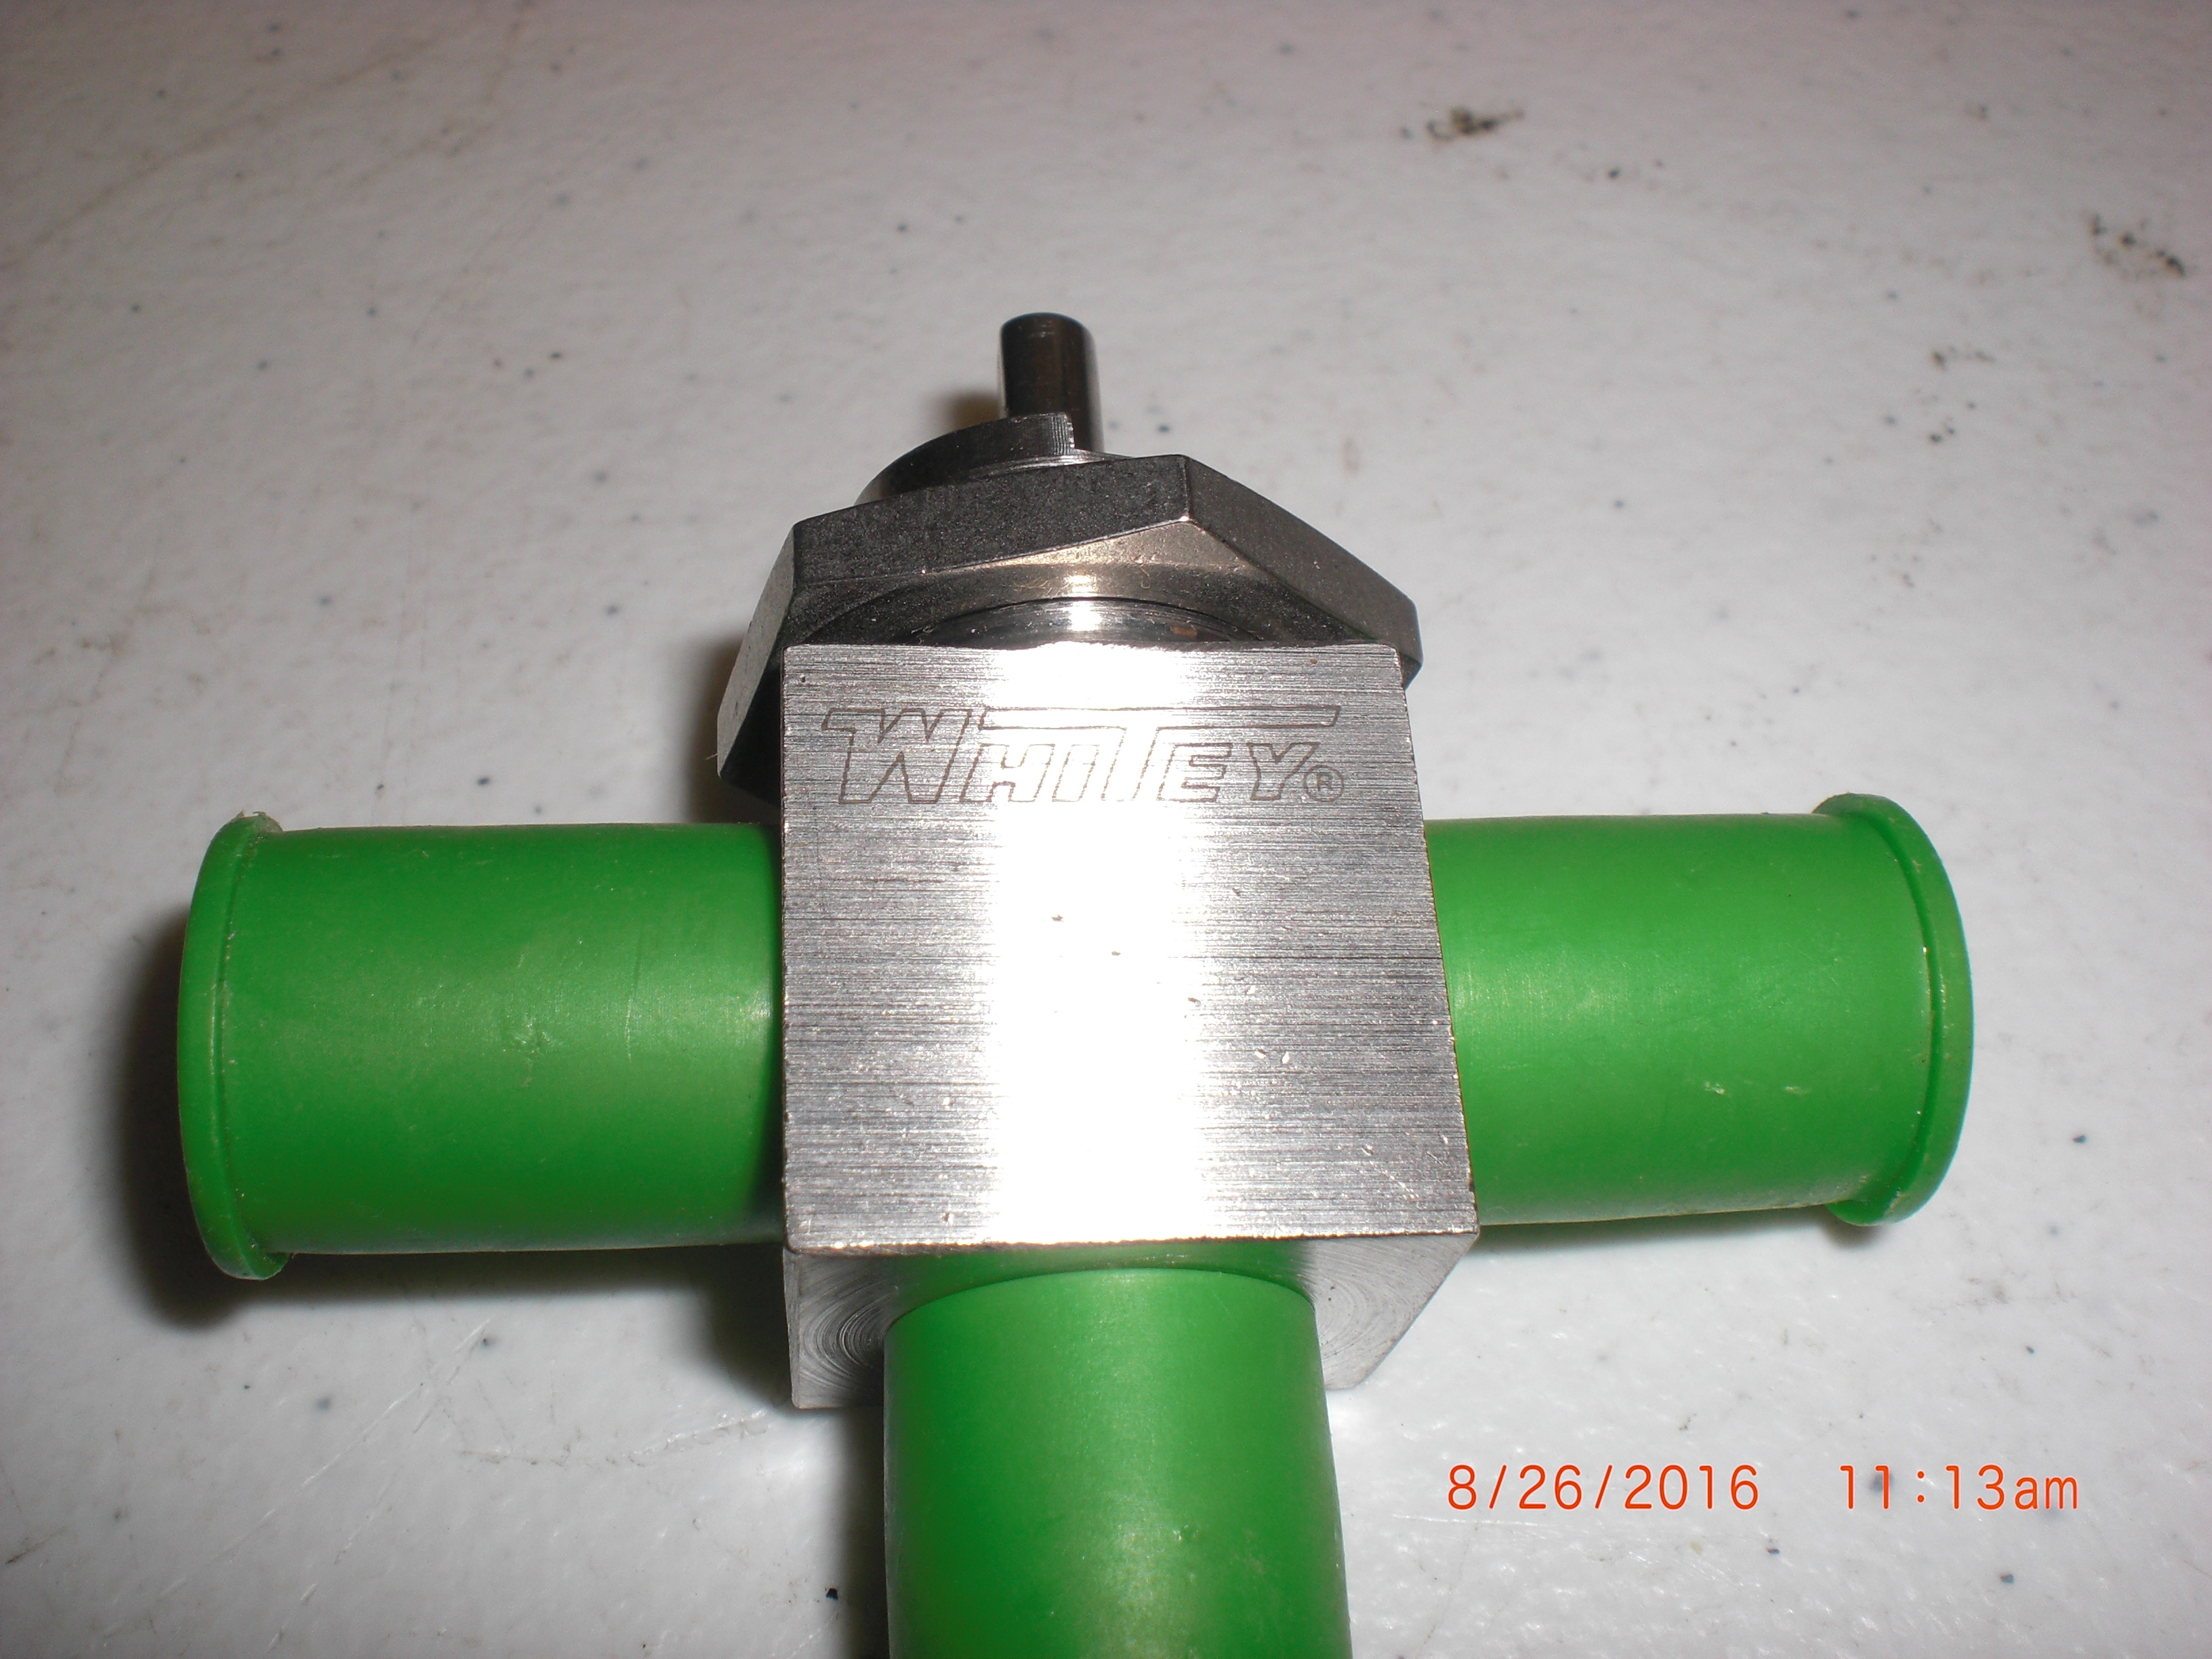 Valve Ball 316L SS 3 way 1/4 MVCR no handle Whitey SS-43XVCR4 Swagelok